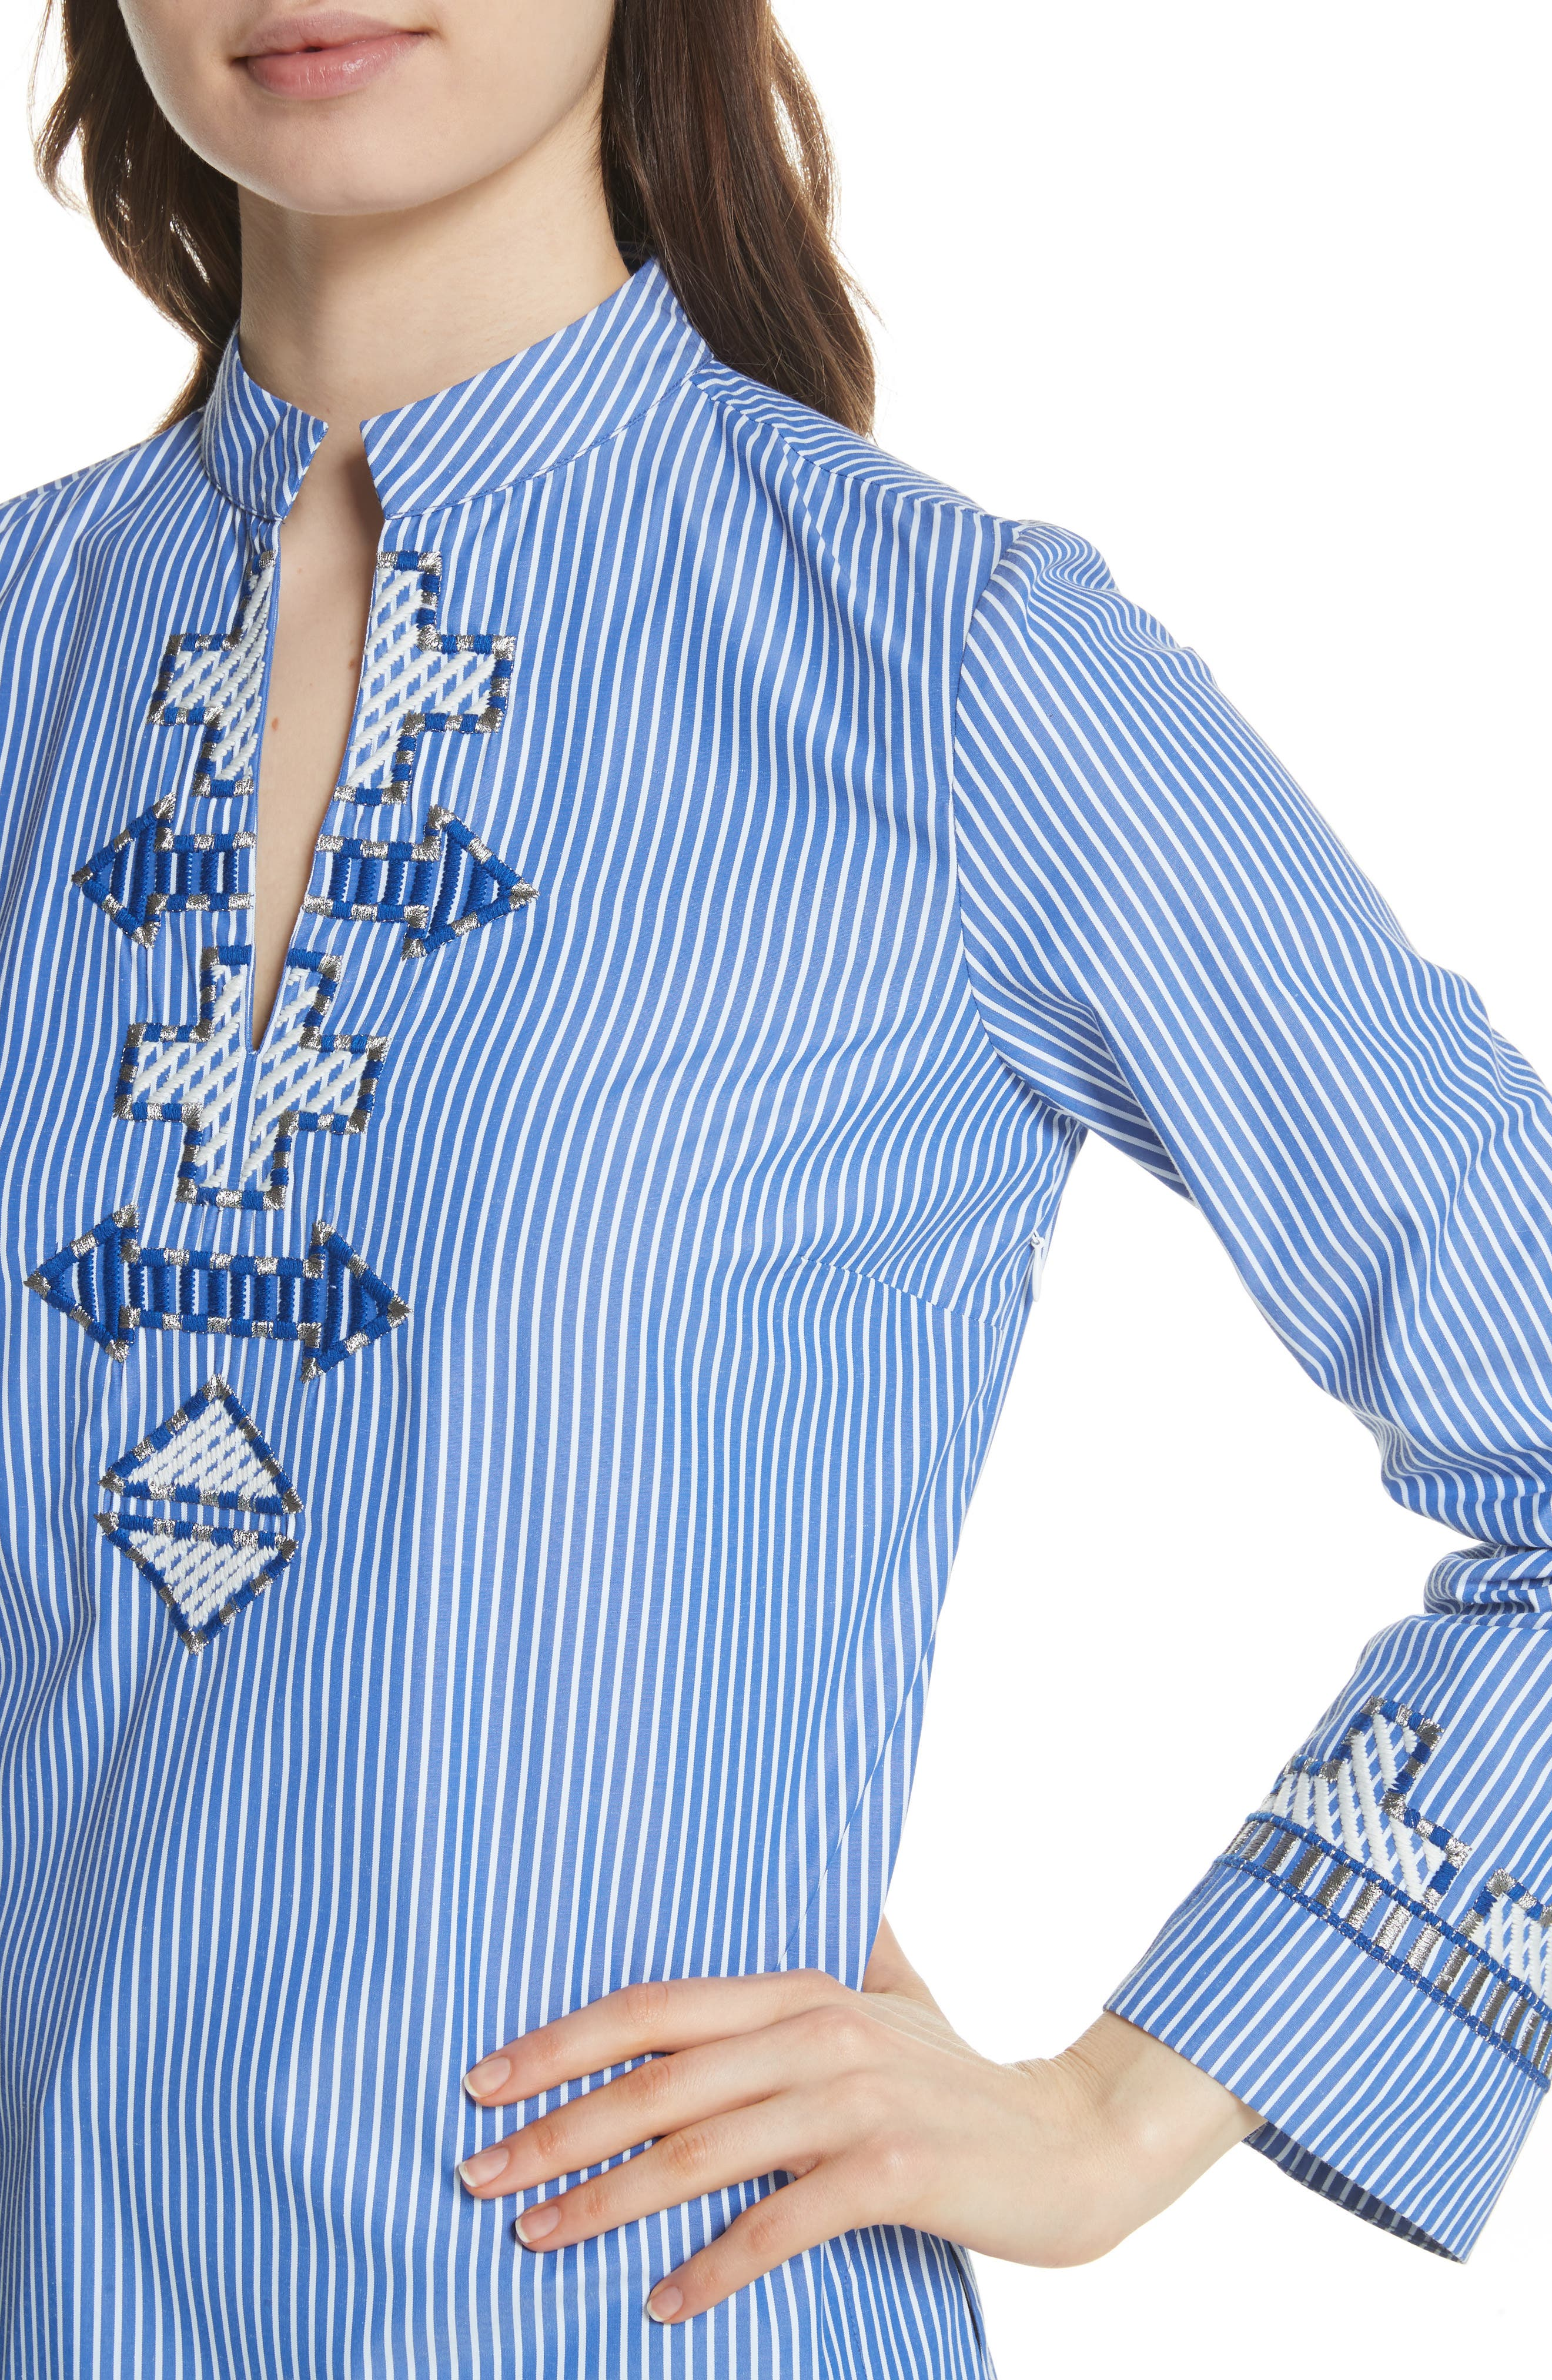 Tory Embroidered Stripe Tunic,                             Alternate thumbnail 4, color,                             Blue/ White